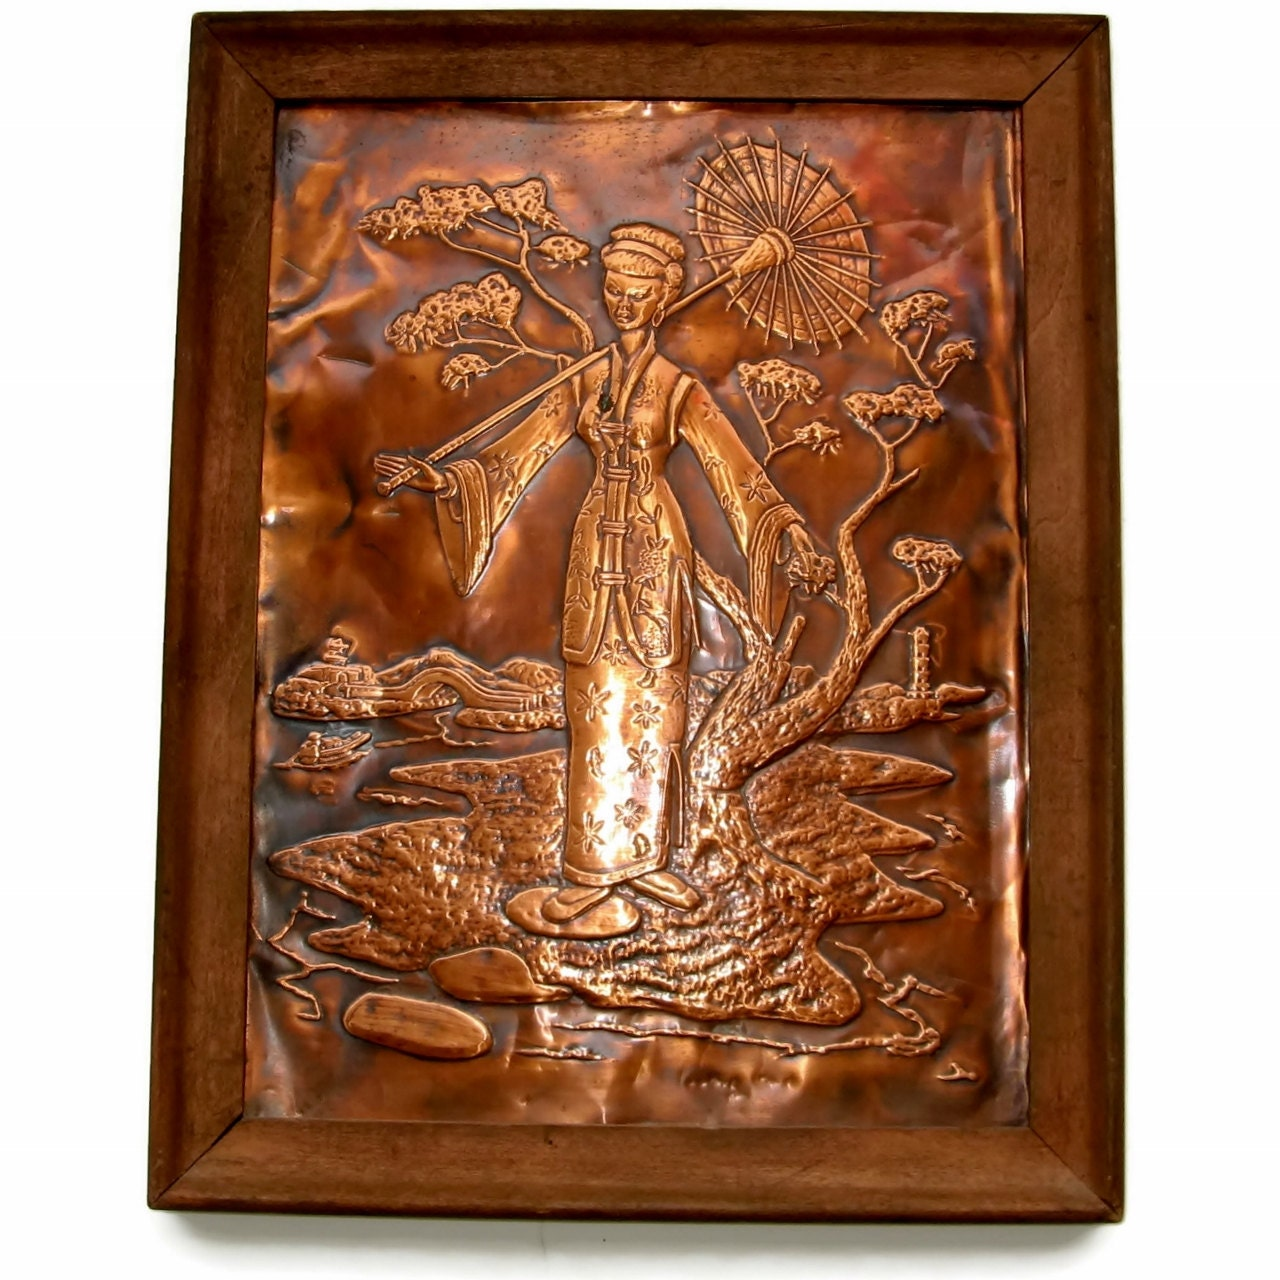 Pressed copper relief geisha wall art hanging by for Copper wall art